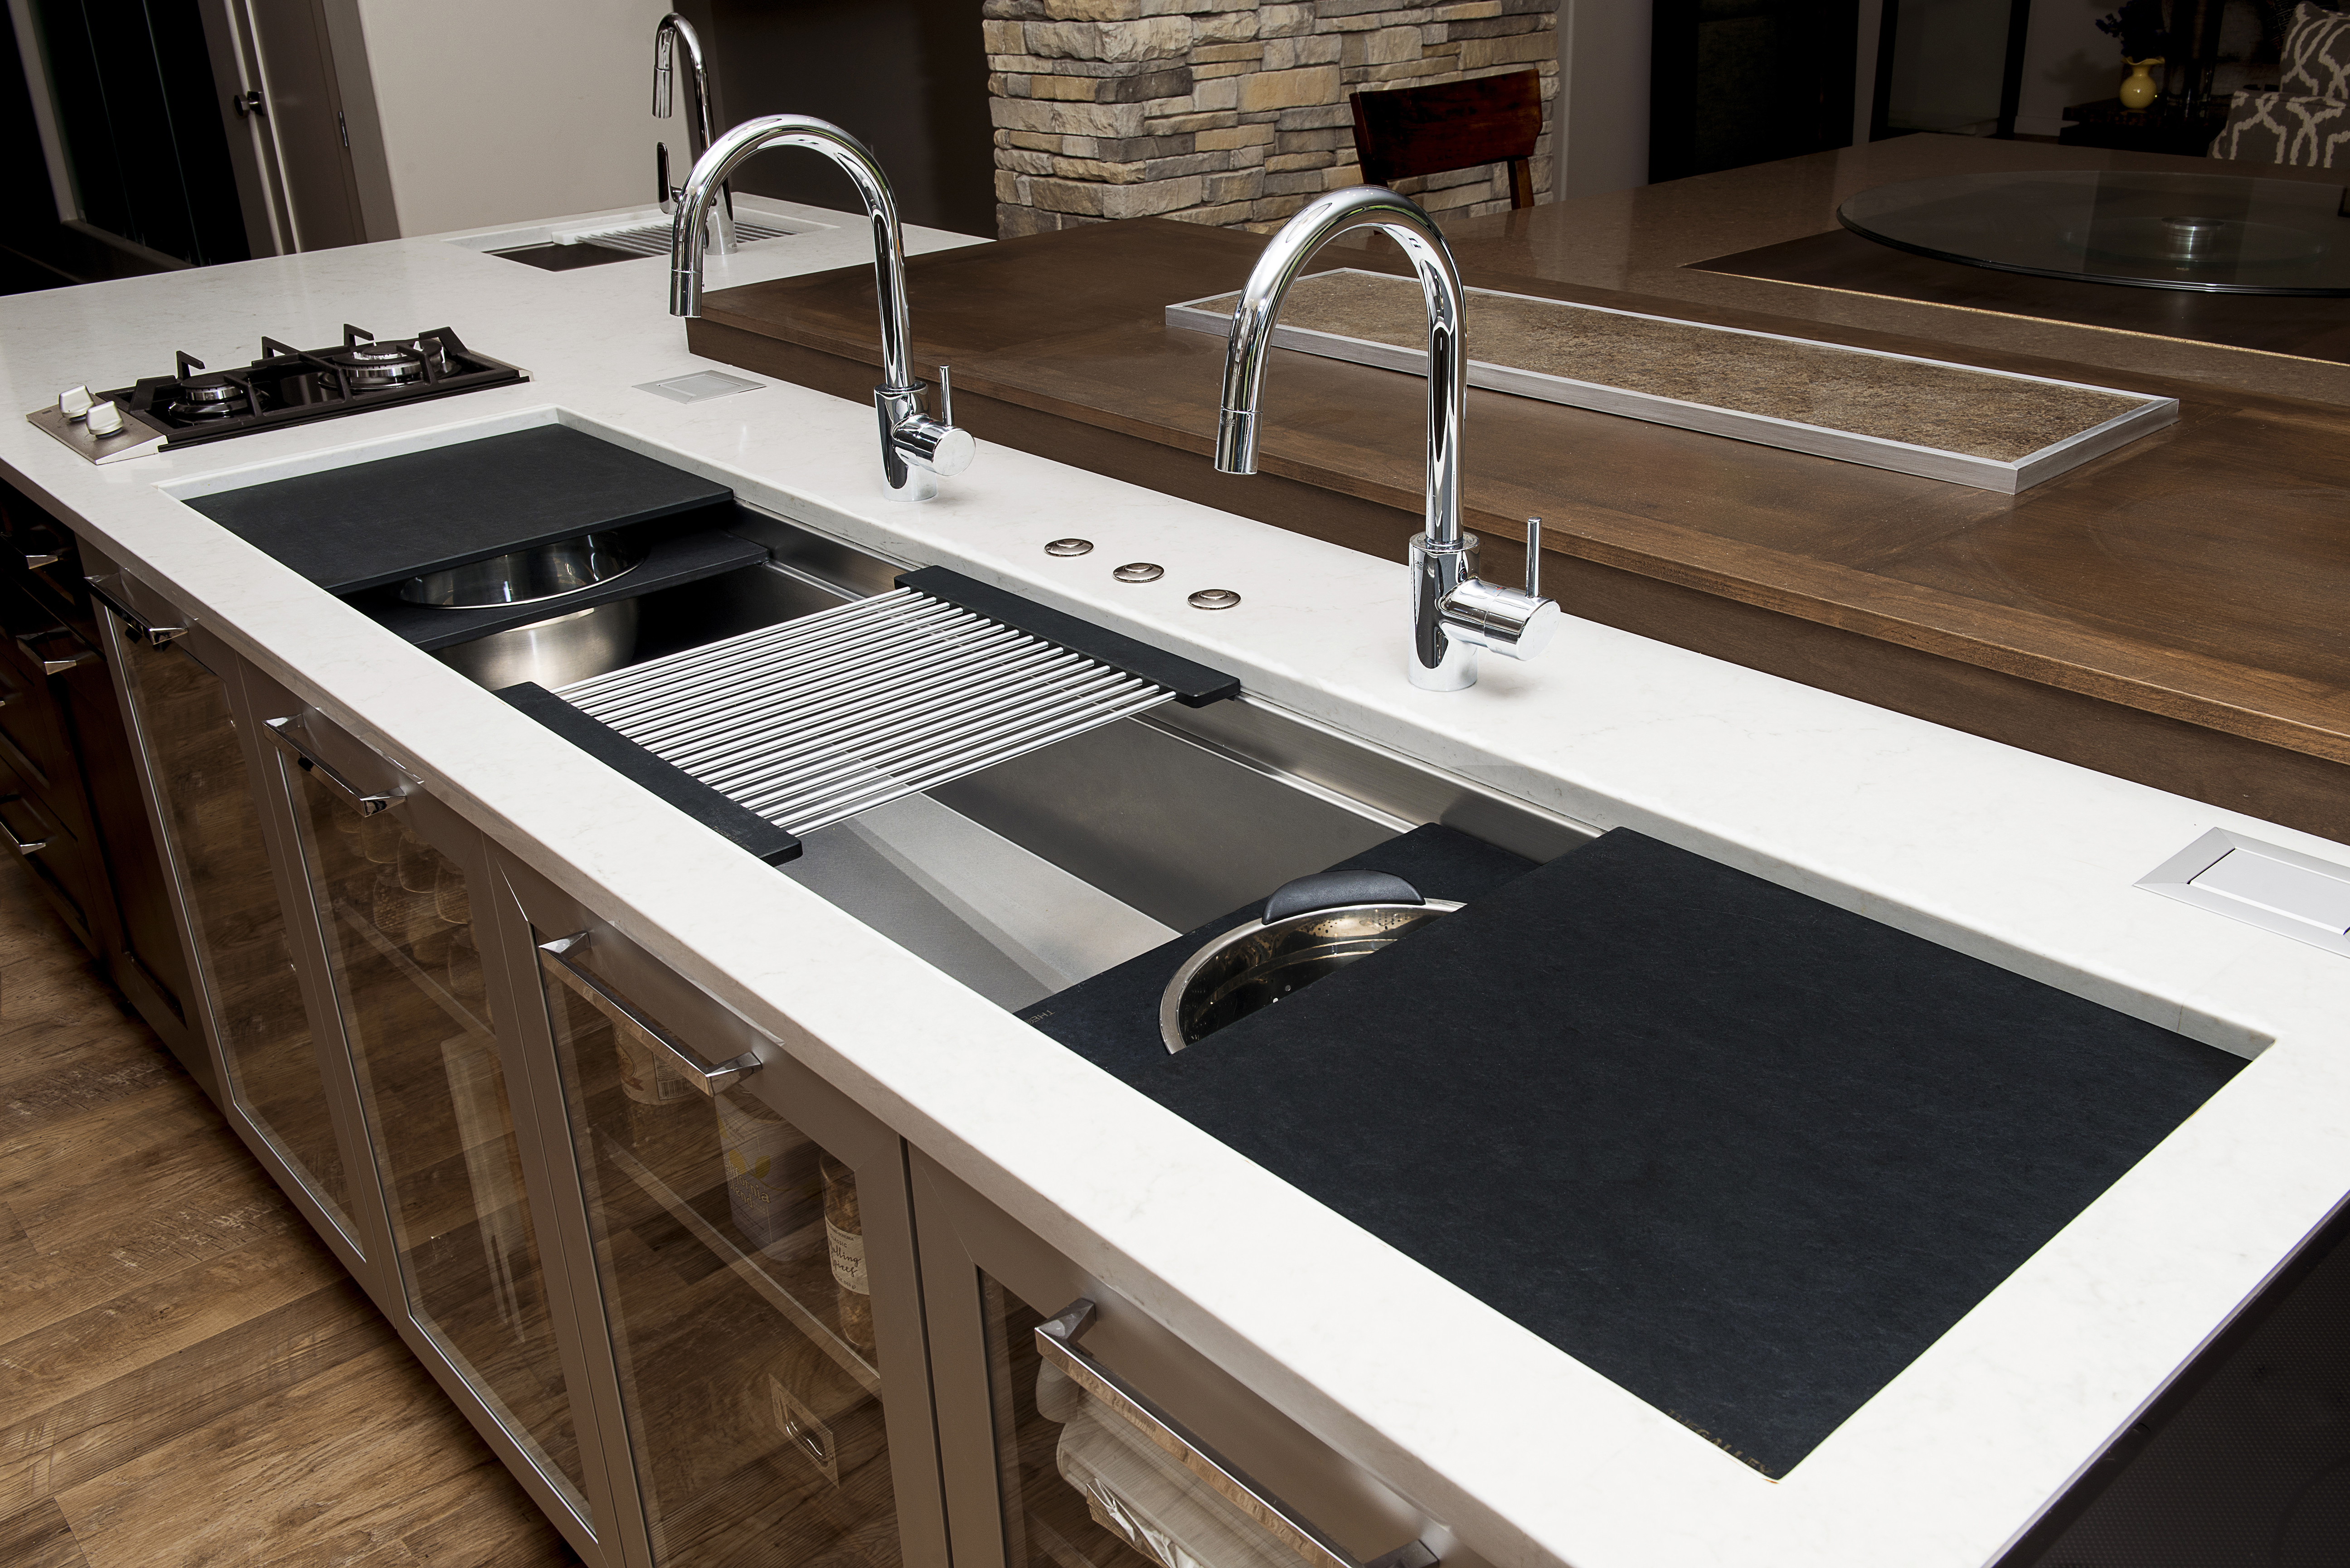 you can also select your preferred finish options so your galley workstation will look just as good as it performs